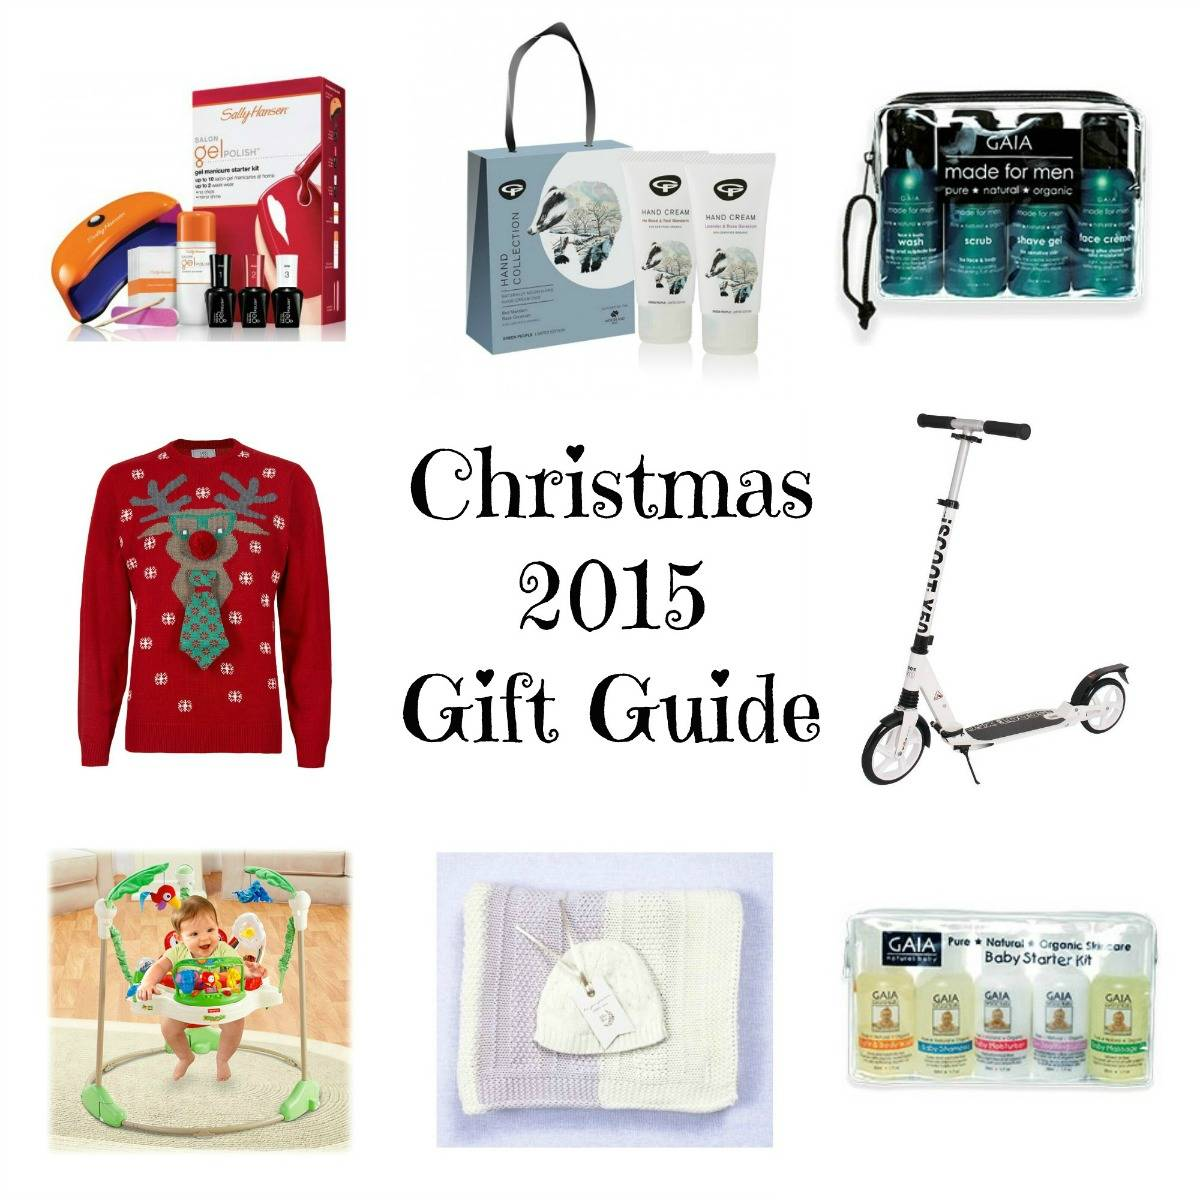 Family Christmas Gift Guide 2015 - Love from Mim